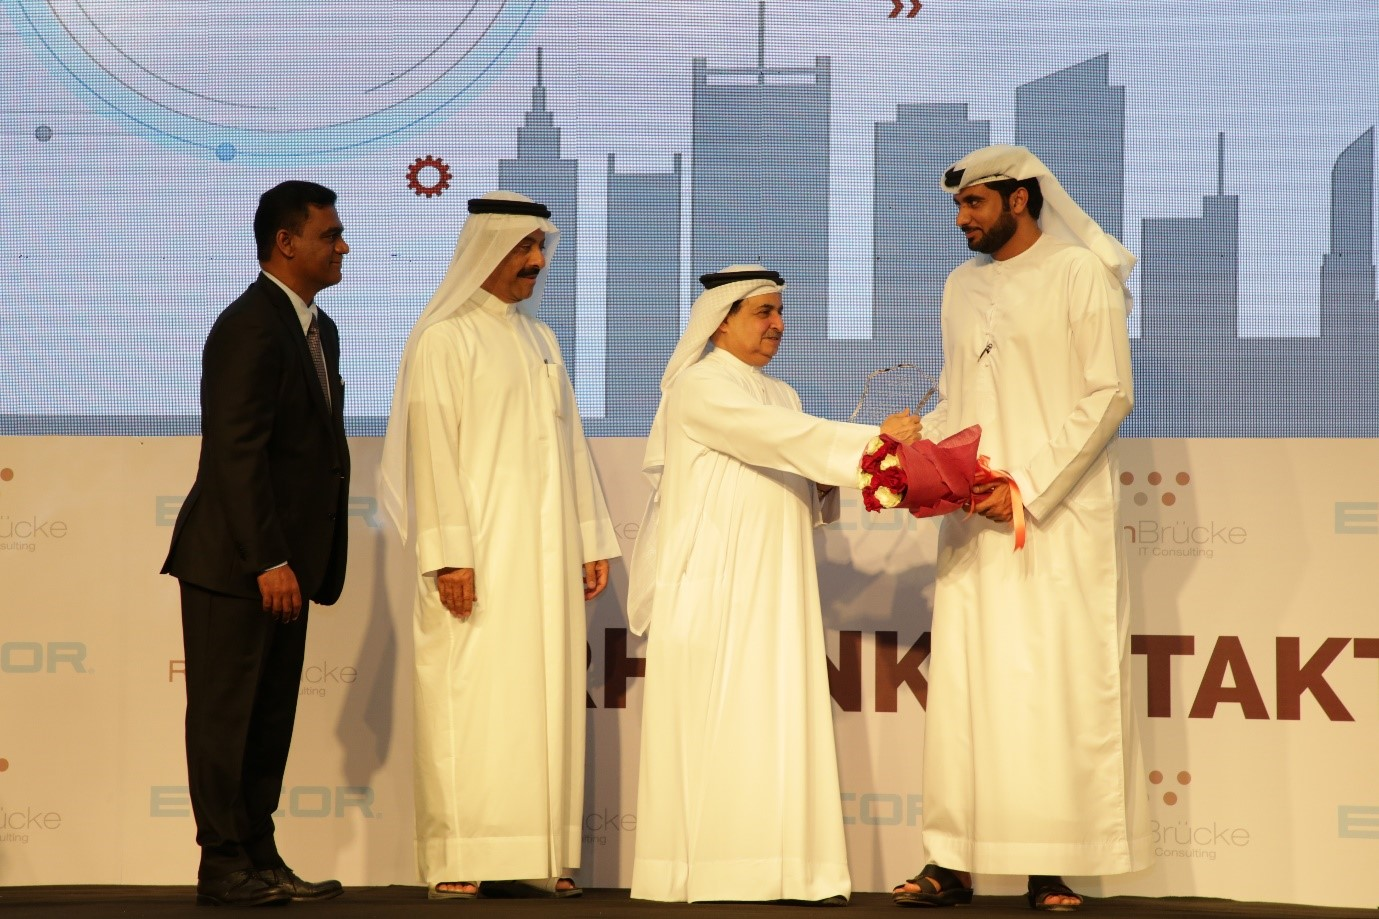 His Excellency Sheikh Mohammed bin Saqr Al Nuaimi for Outstanding contribution to Society